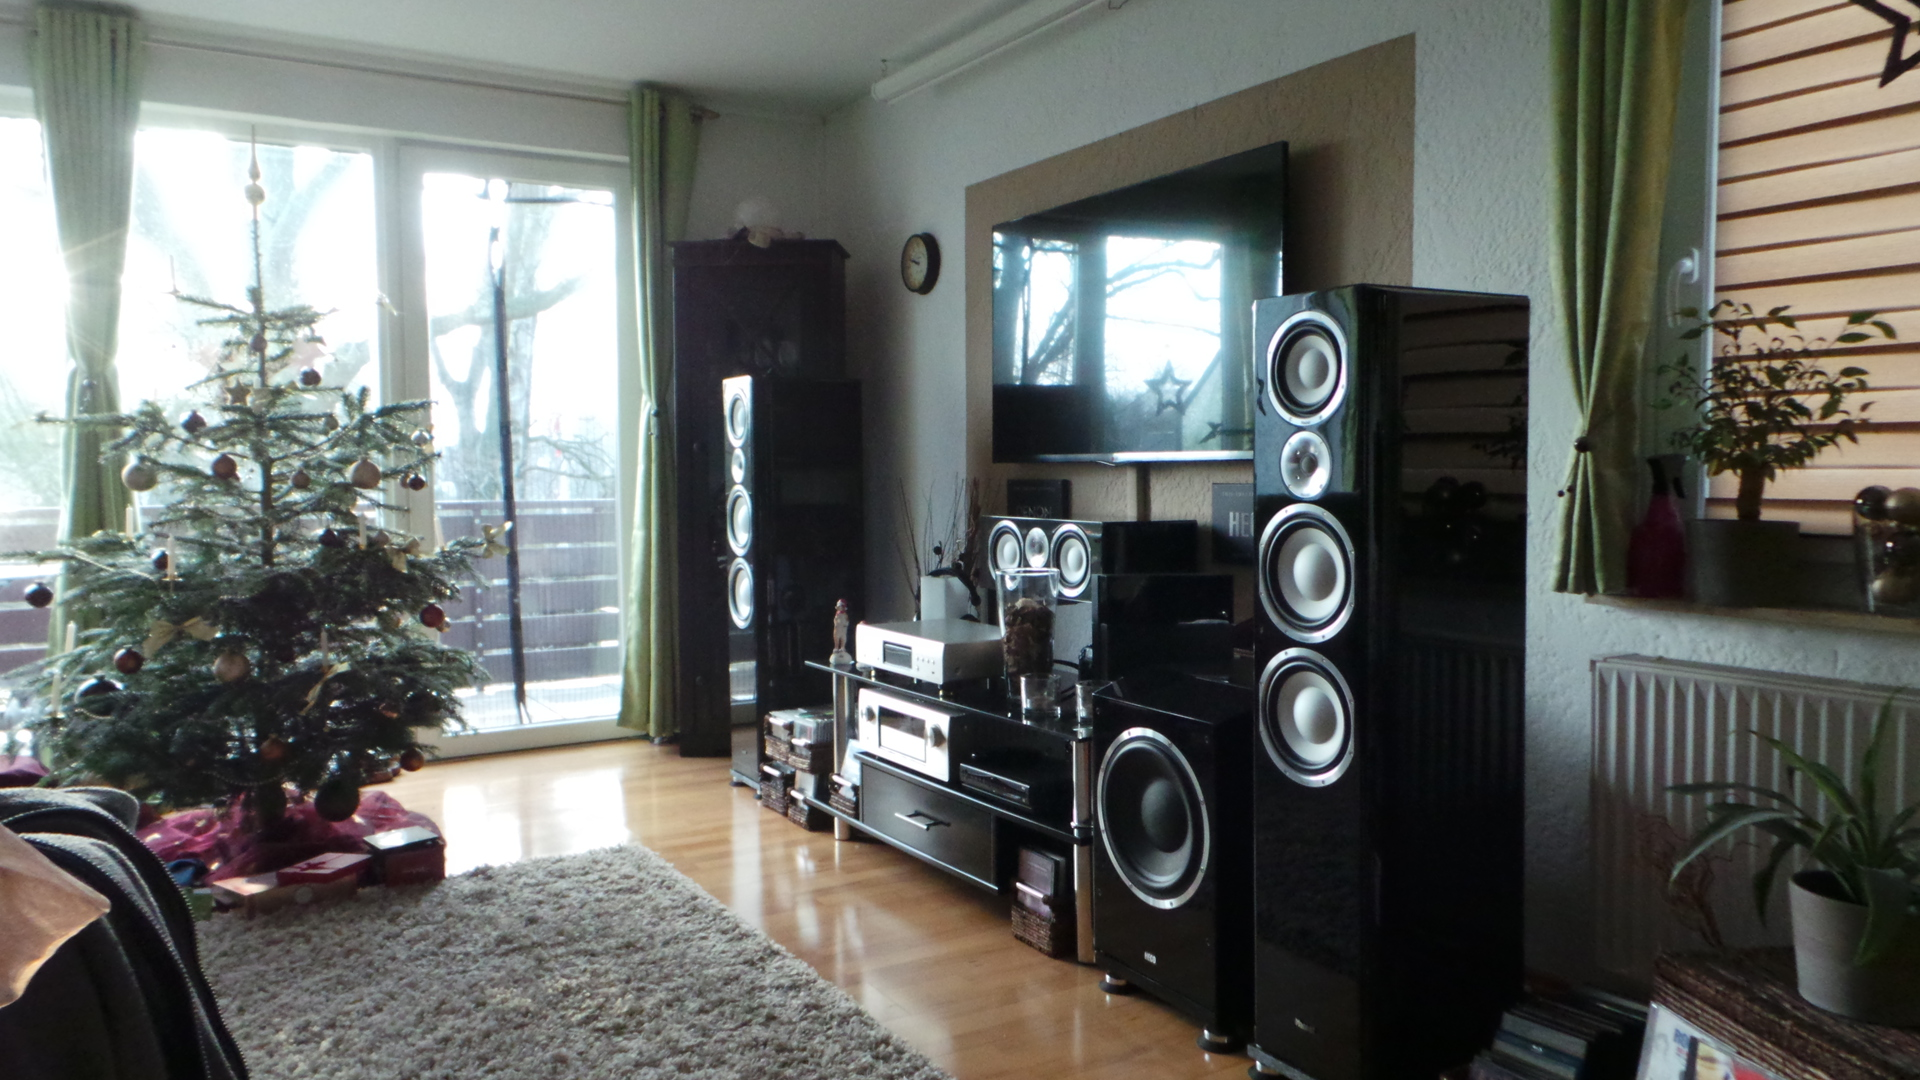 wohnzimmer heimkino wohnzimmerheimkino hifi. Black Bedroom Furniture Sets. Home Design Ideas